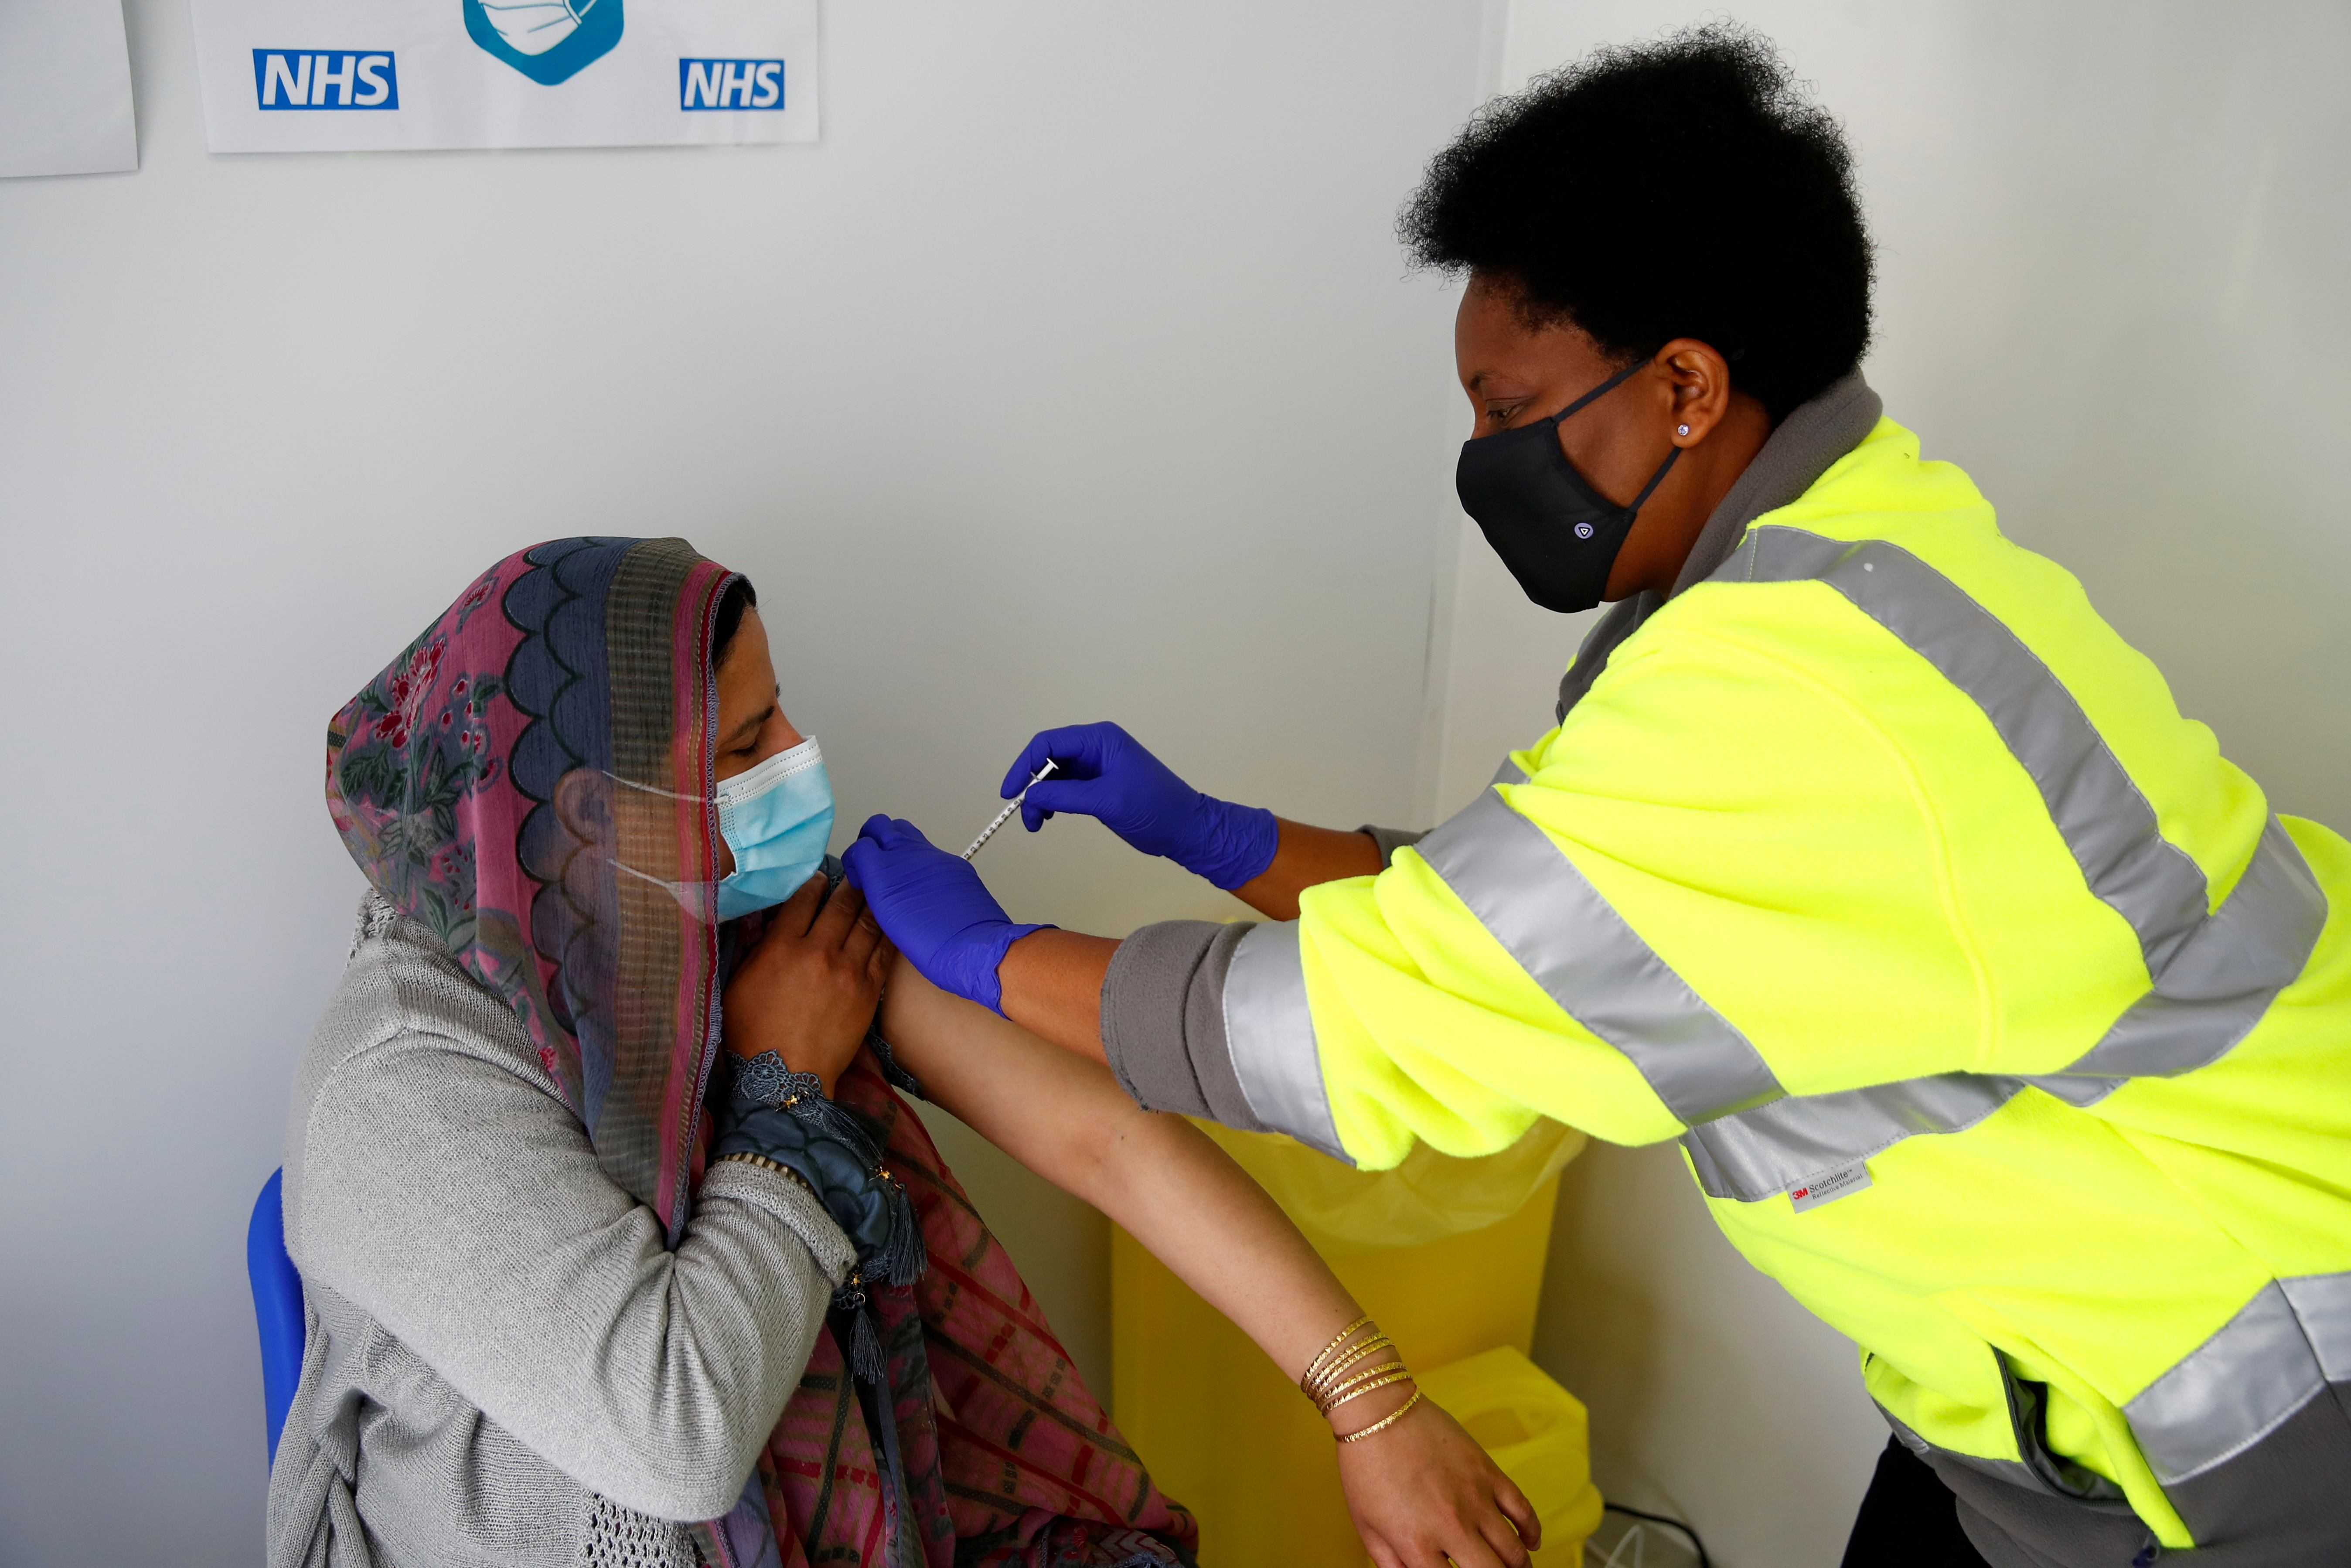 Nasreen Akhtar, 35, receives a dose of Pfizer vaccine against COVID-19 at a vaccination centre in Pharmacy 4 U, amid the outbreak of the coronavirus disease (COVID-19), in Blackburn, Britain, May 19, 2021. REUTERS/Jason Cairnduff/File Photo